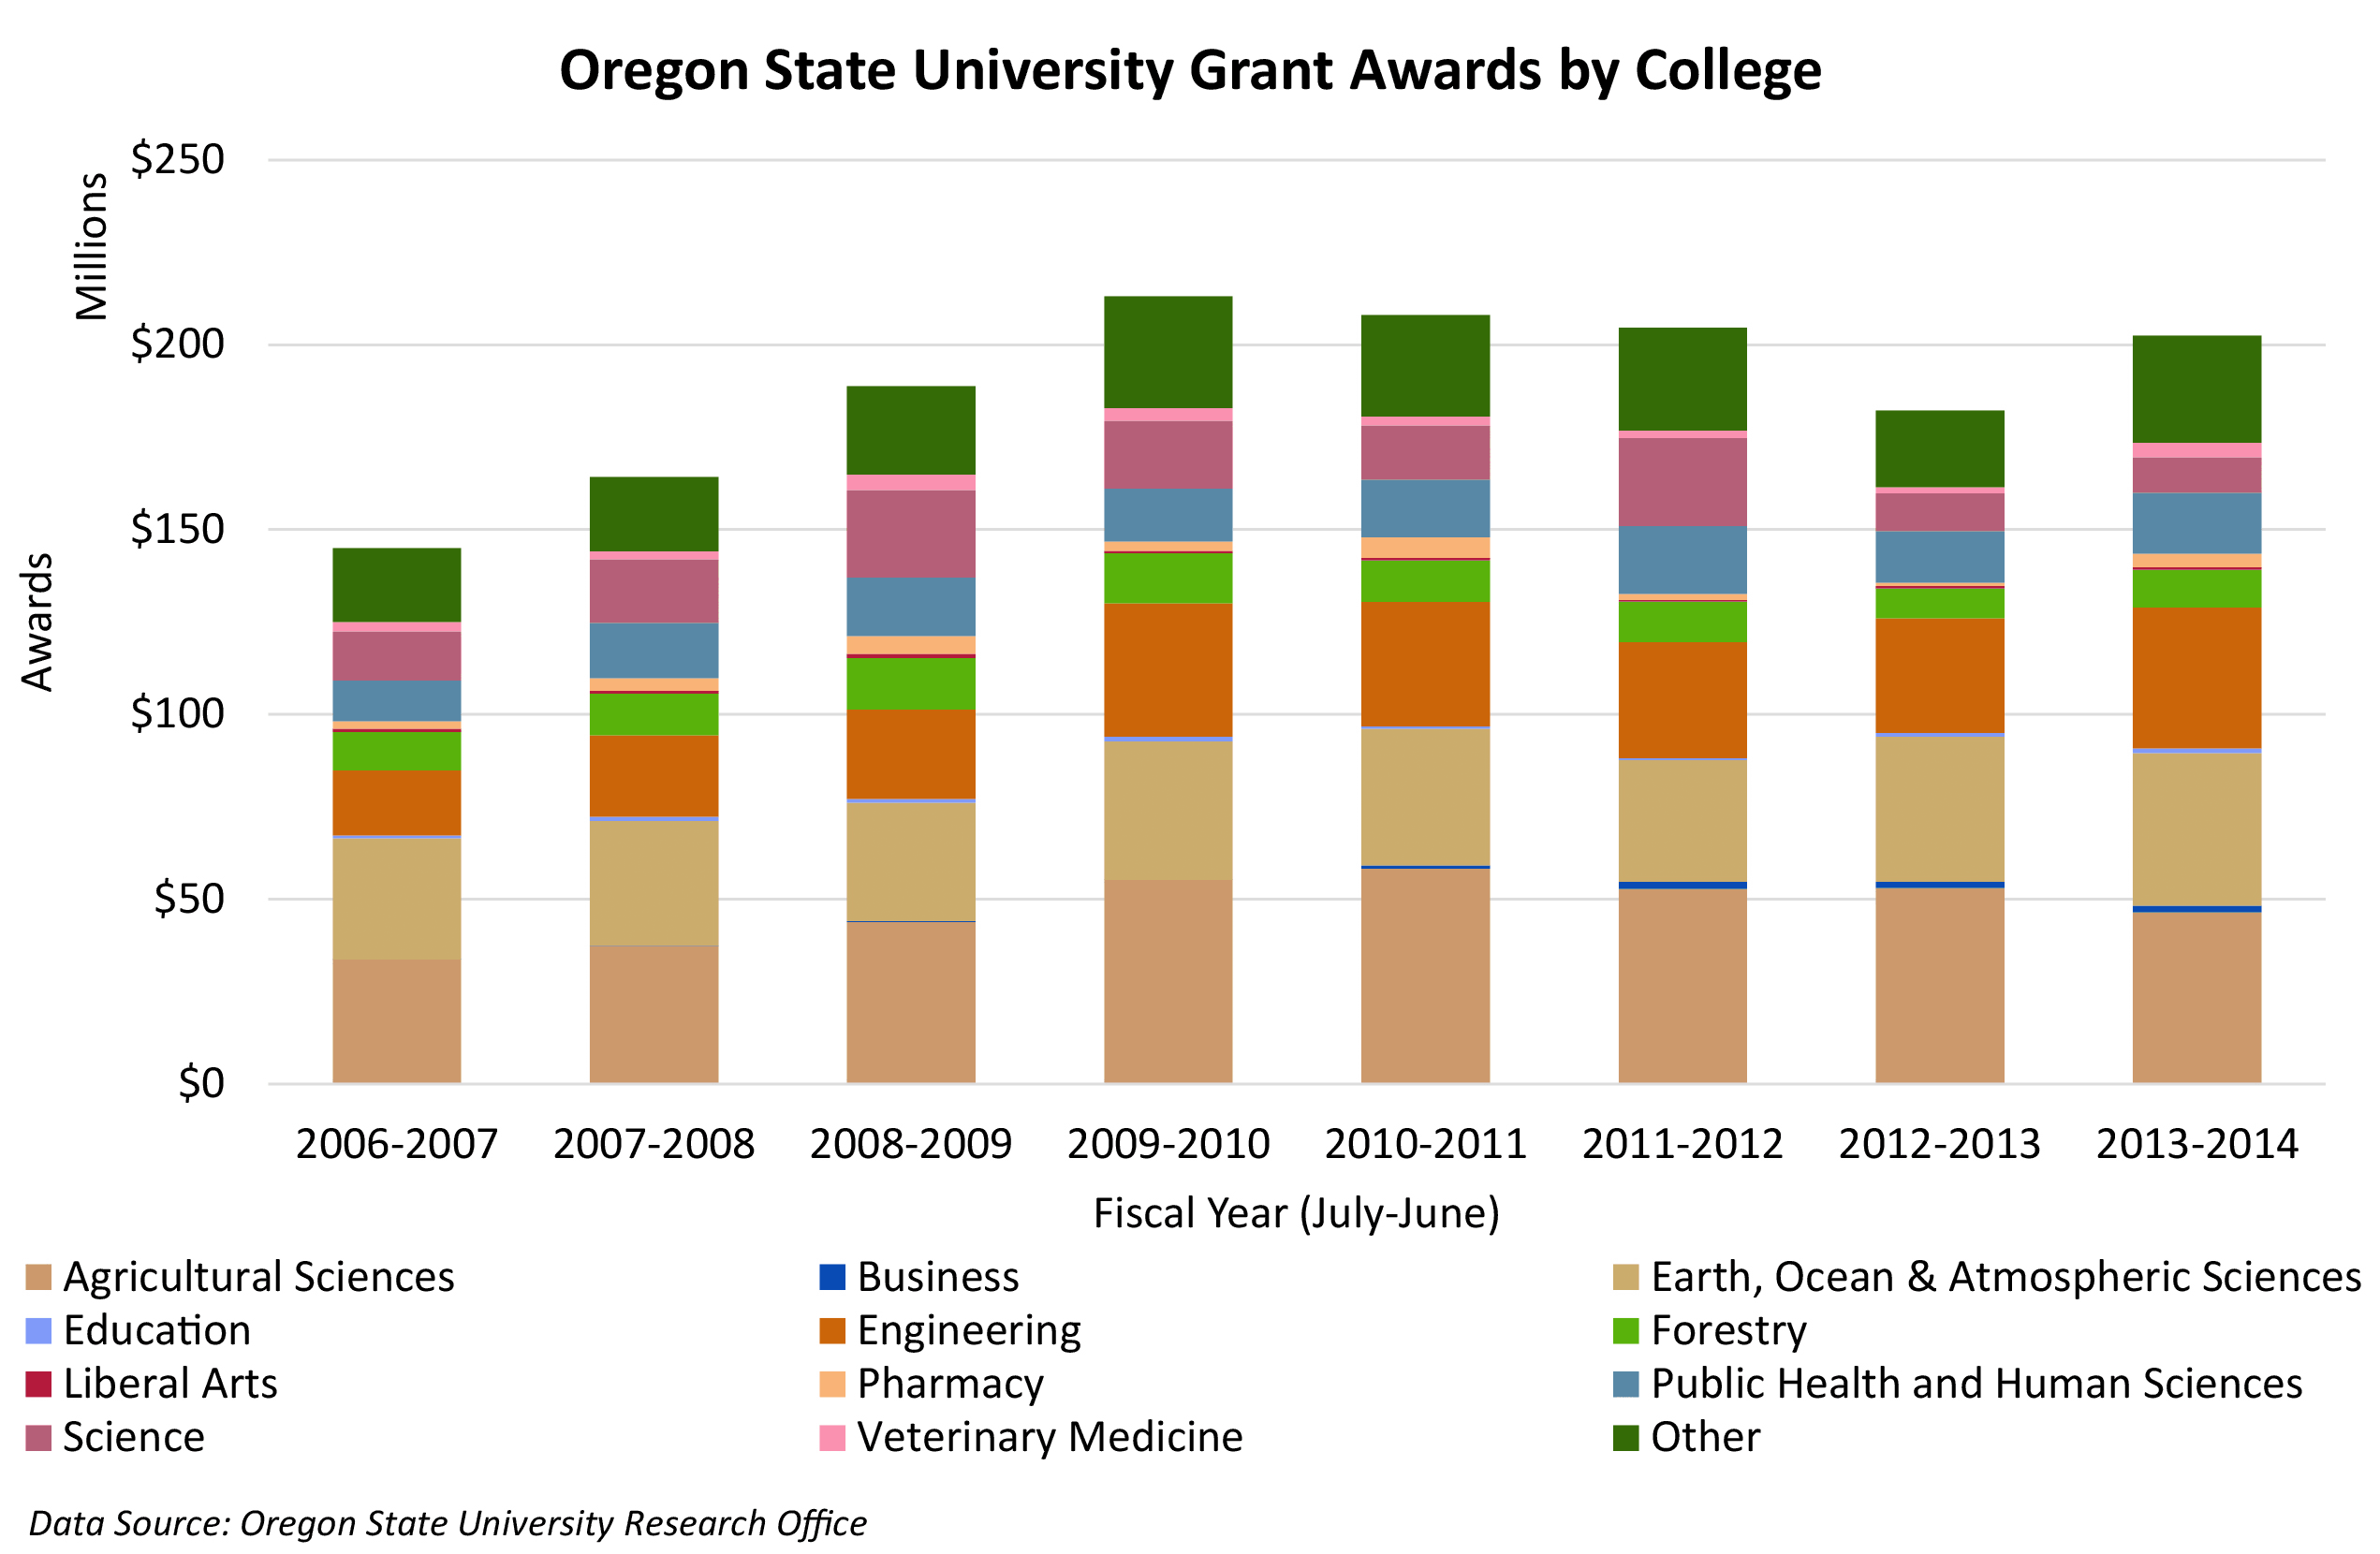 Oregon State University Grant Awards by College